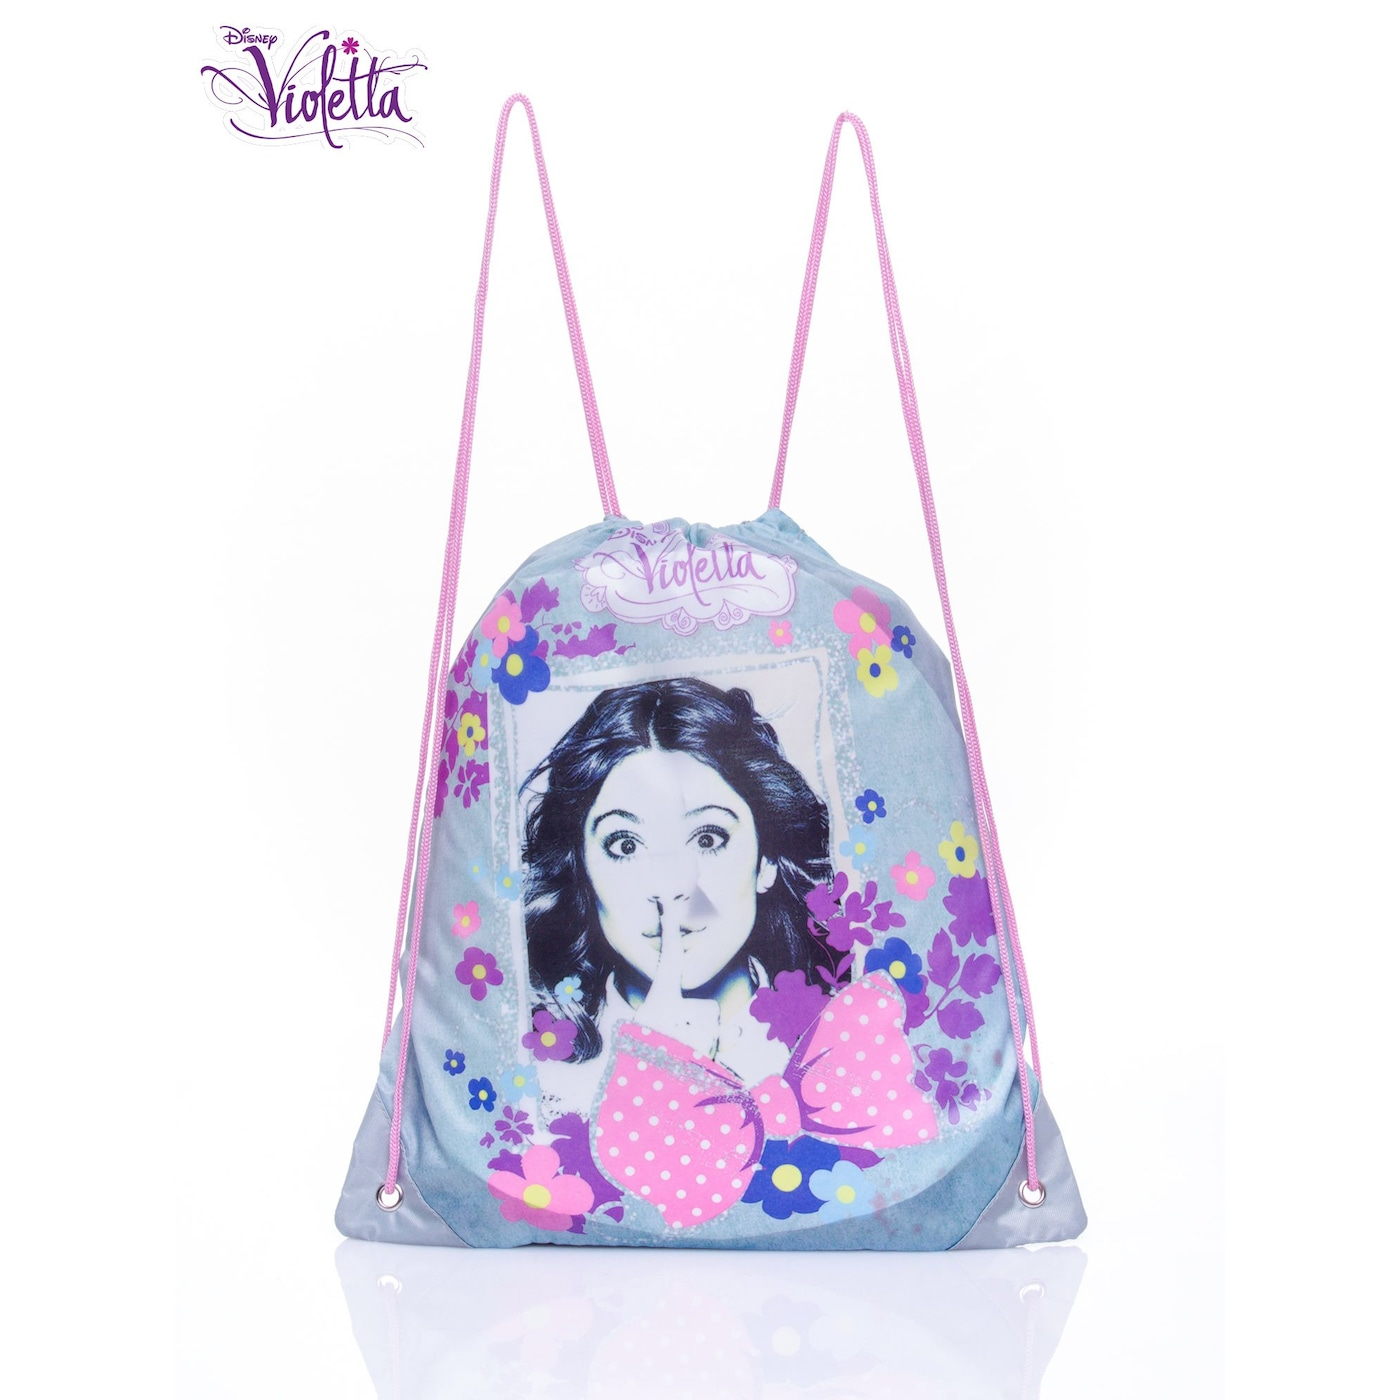 A blue backpack with a Violetta bag